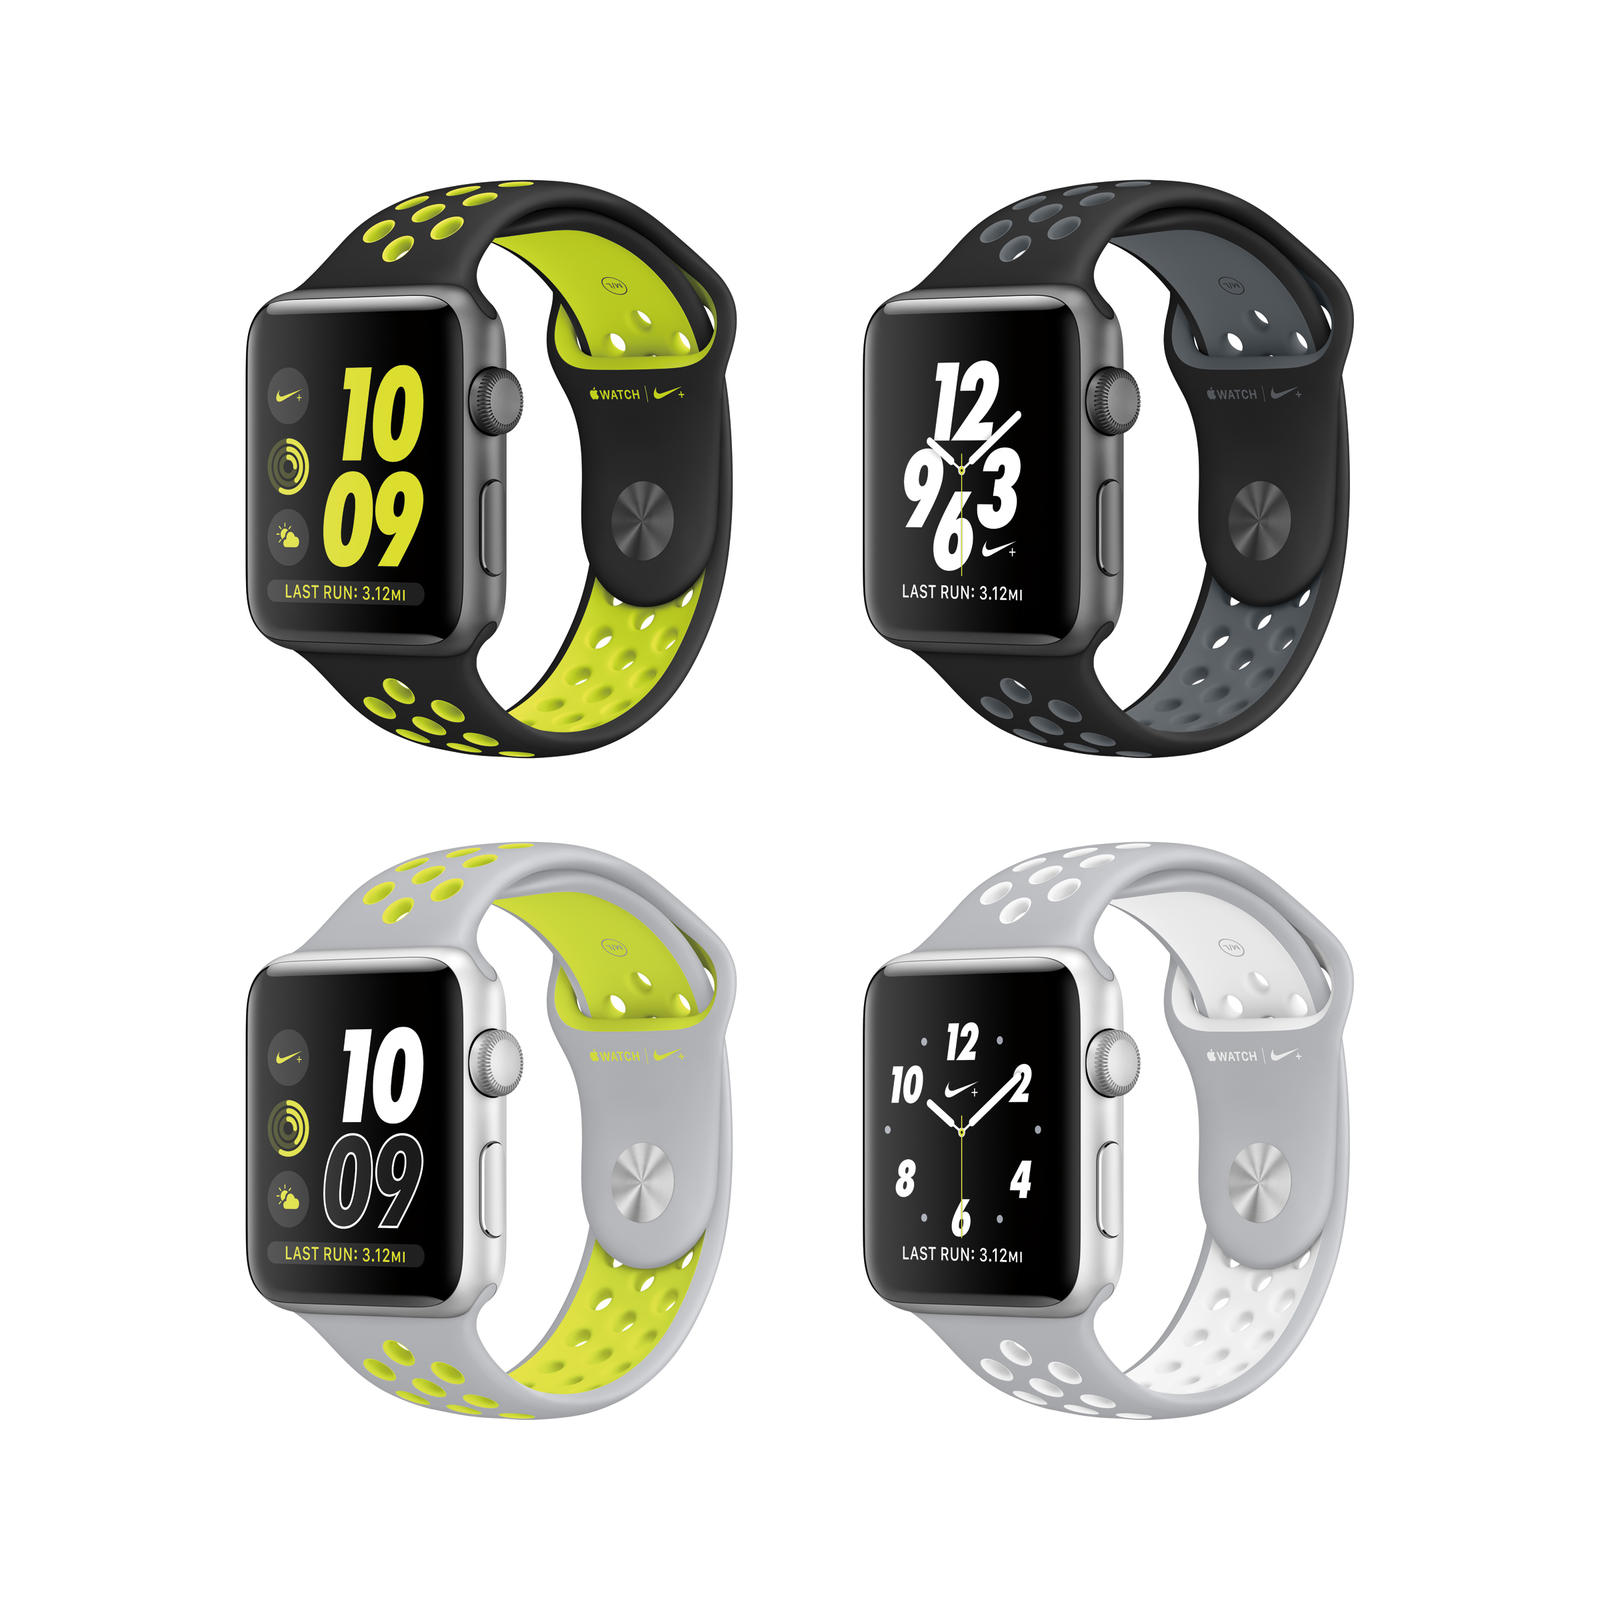 Nike-Plus-Apple-Watch-2016-Clock